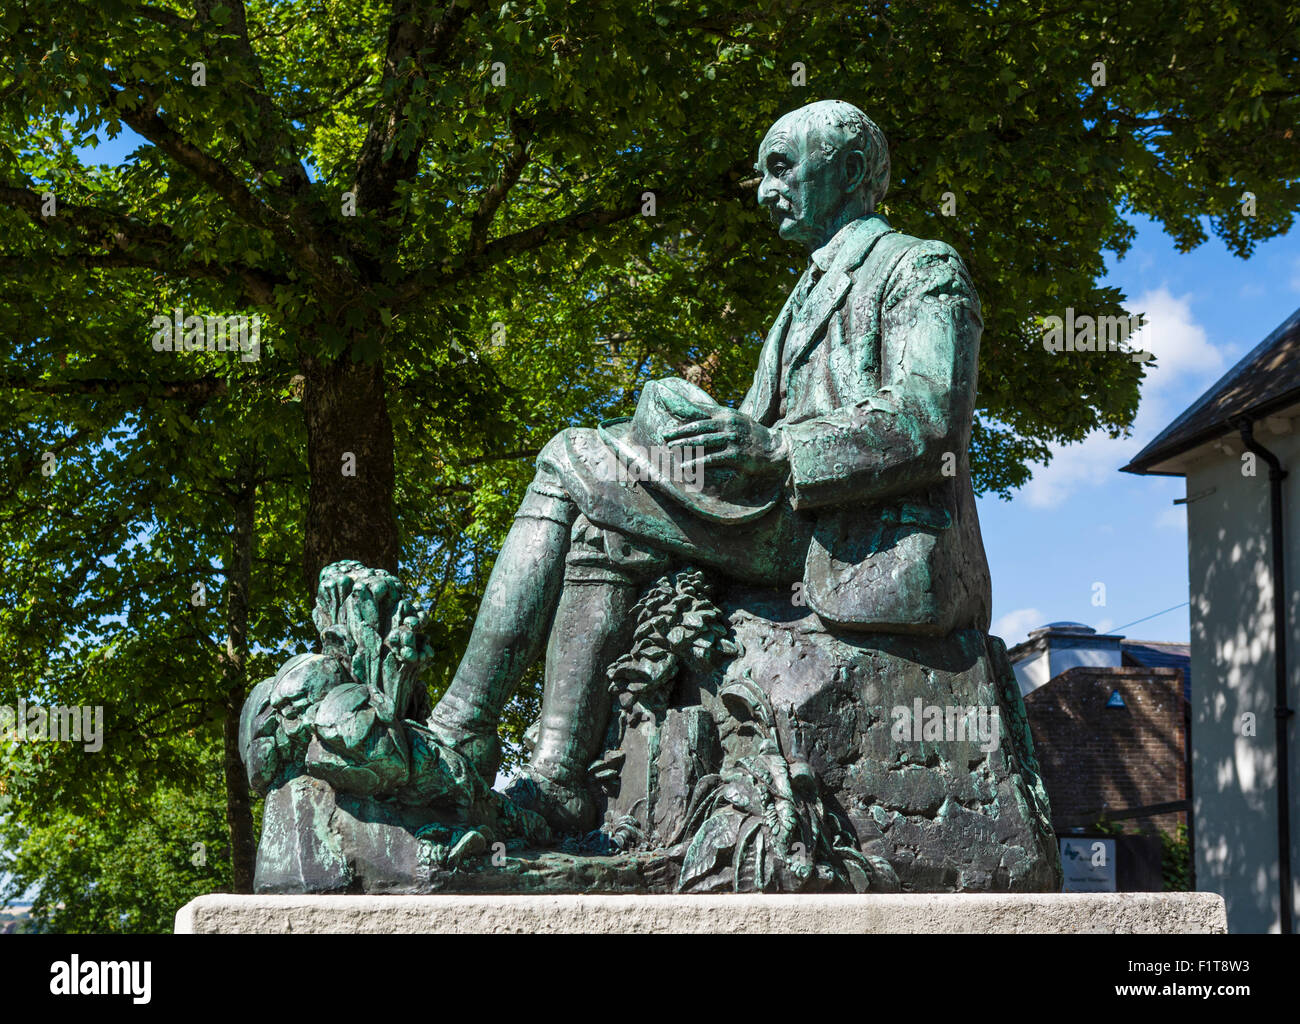 Statue of the writer Thomas Hardy in the town centre, Dorchester, Dorset, England, UK - Stock Image